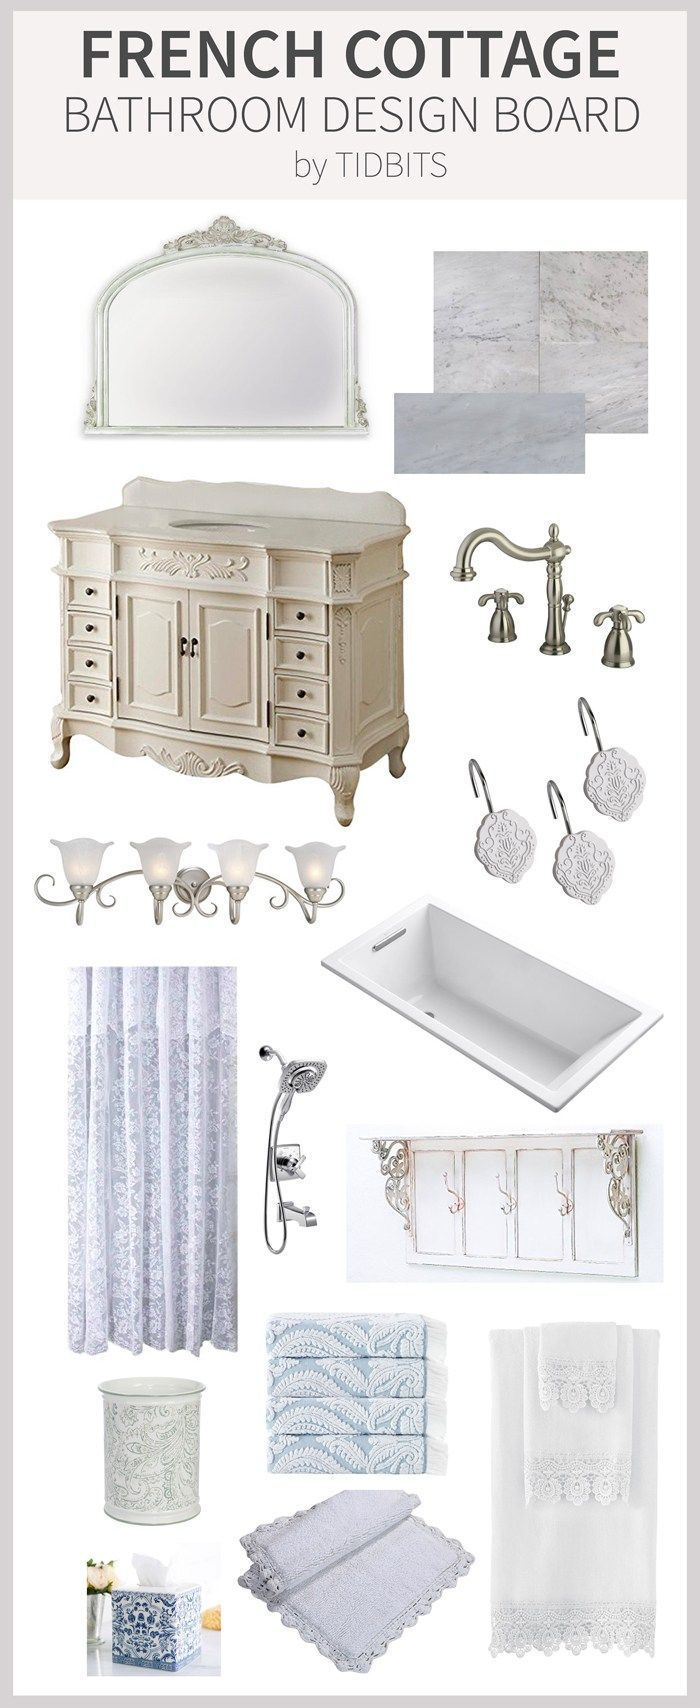 Best 791 Diy French Country Decor Rustic Farmhouse Images On Pinterest Diy And Crafts